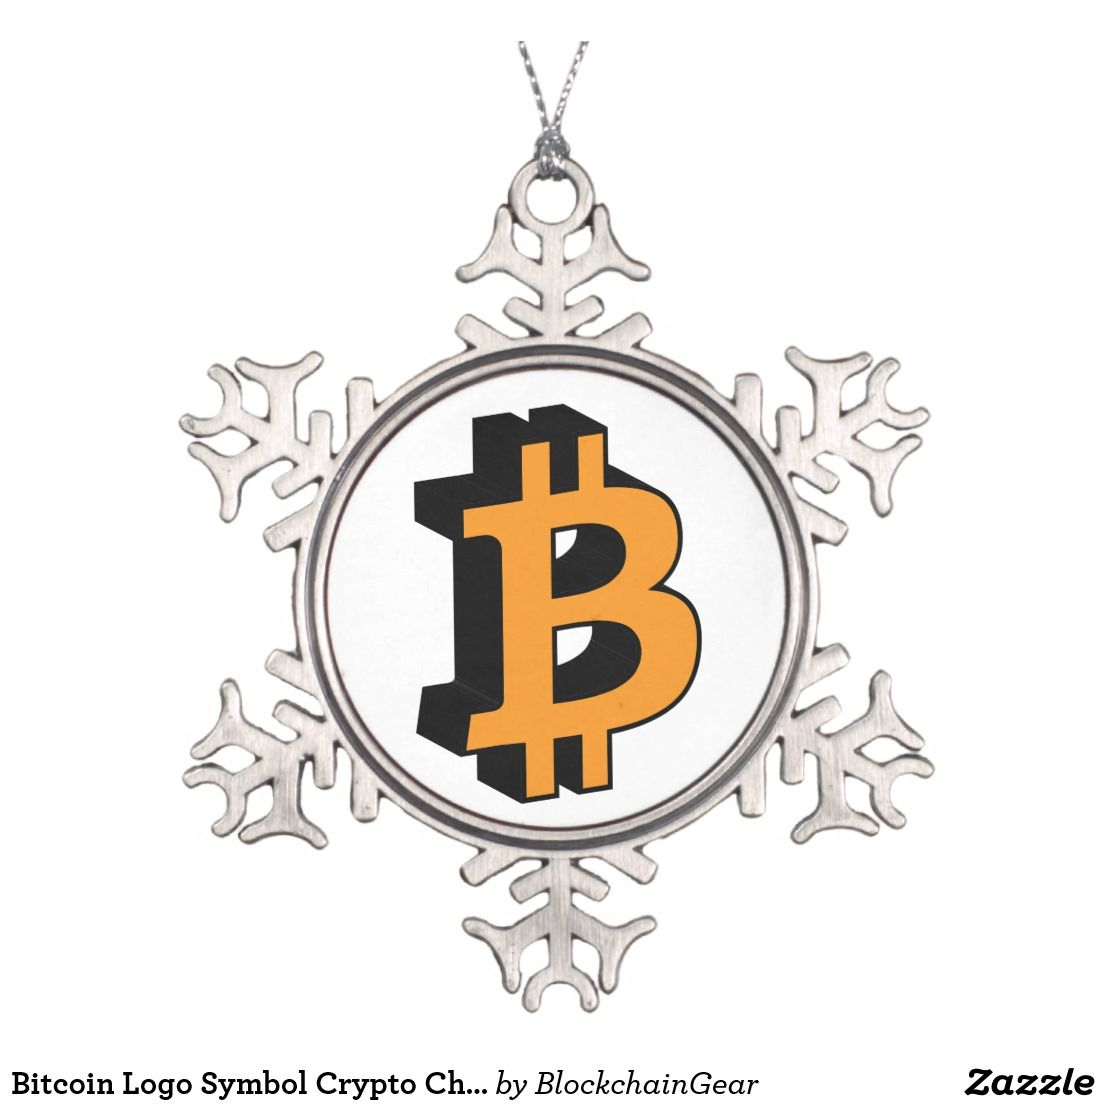 Bitcoin Logo Symbol Crypto Christmas Snow Ornament Pinterest